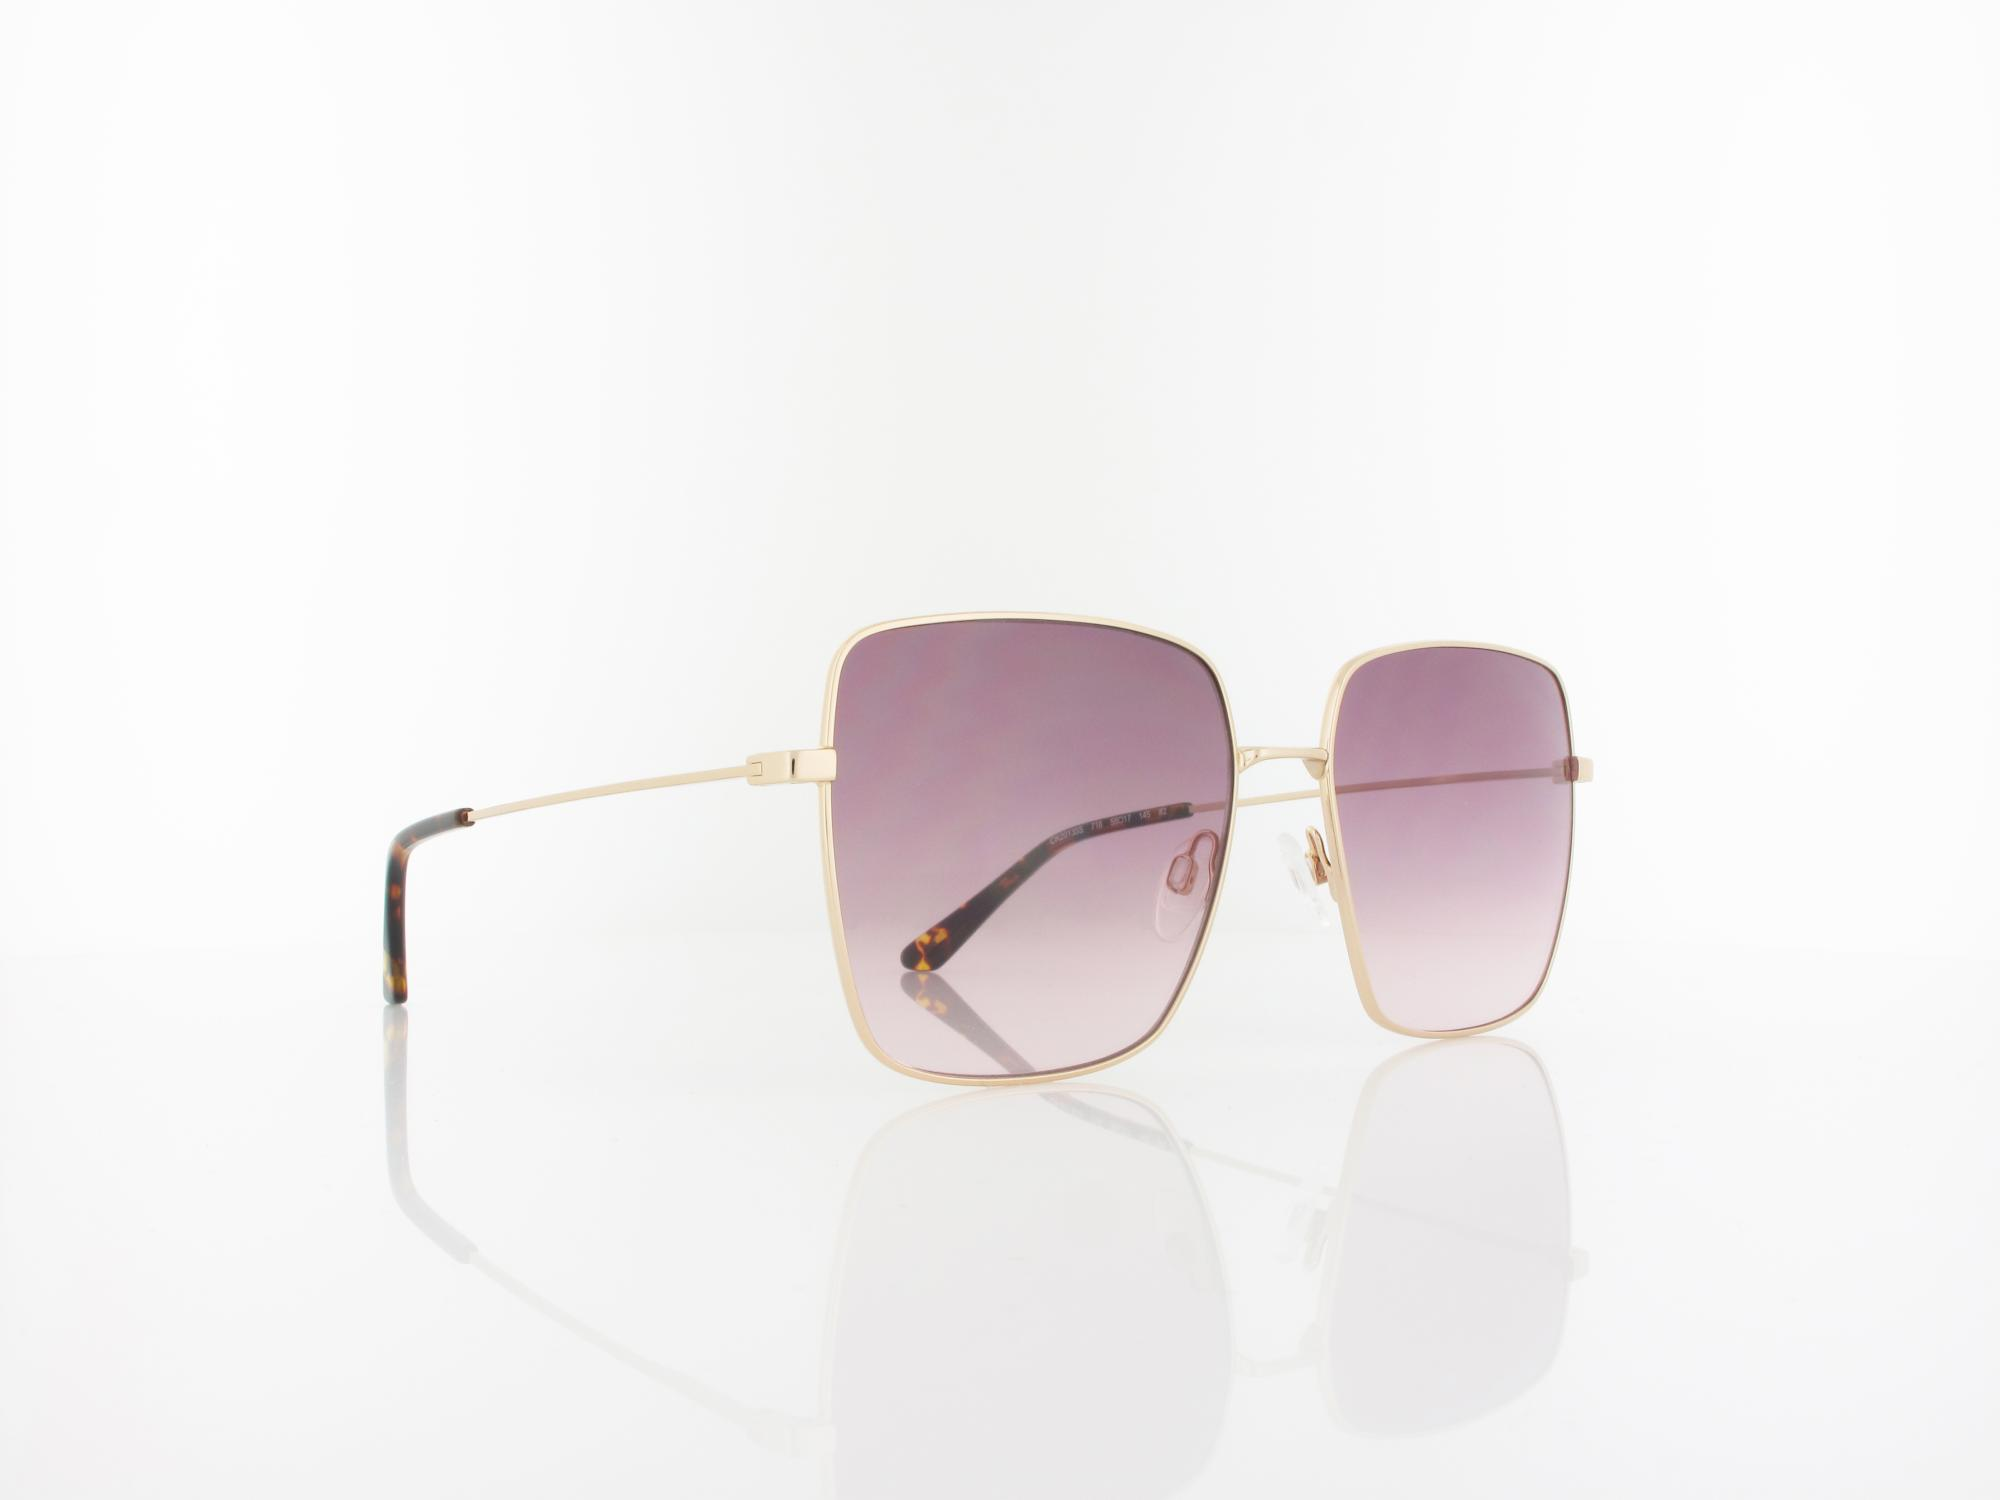 Calvin Klein | CK20135S 718 58 | yellow gold / gradient purple